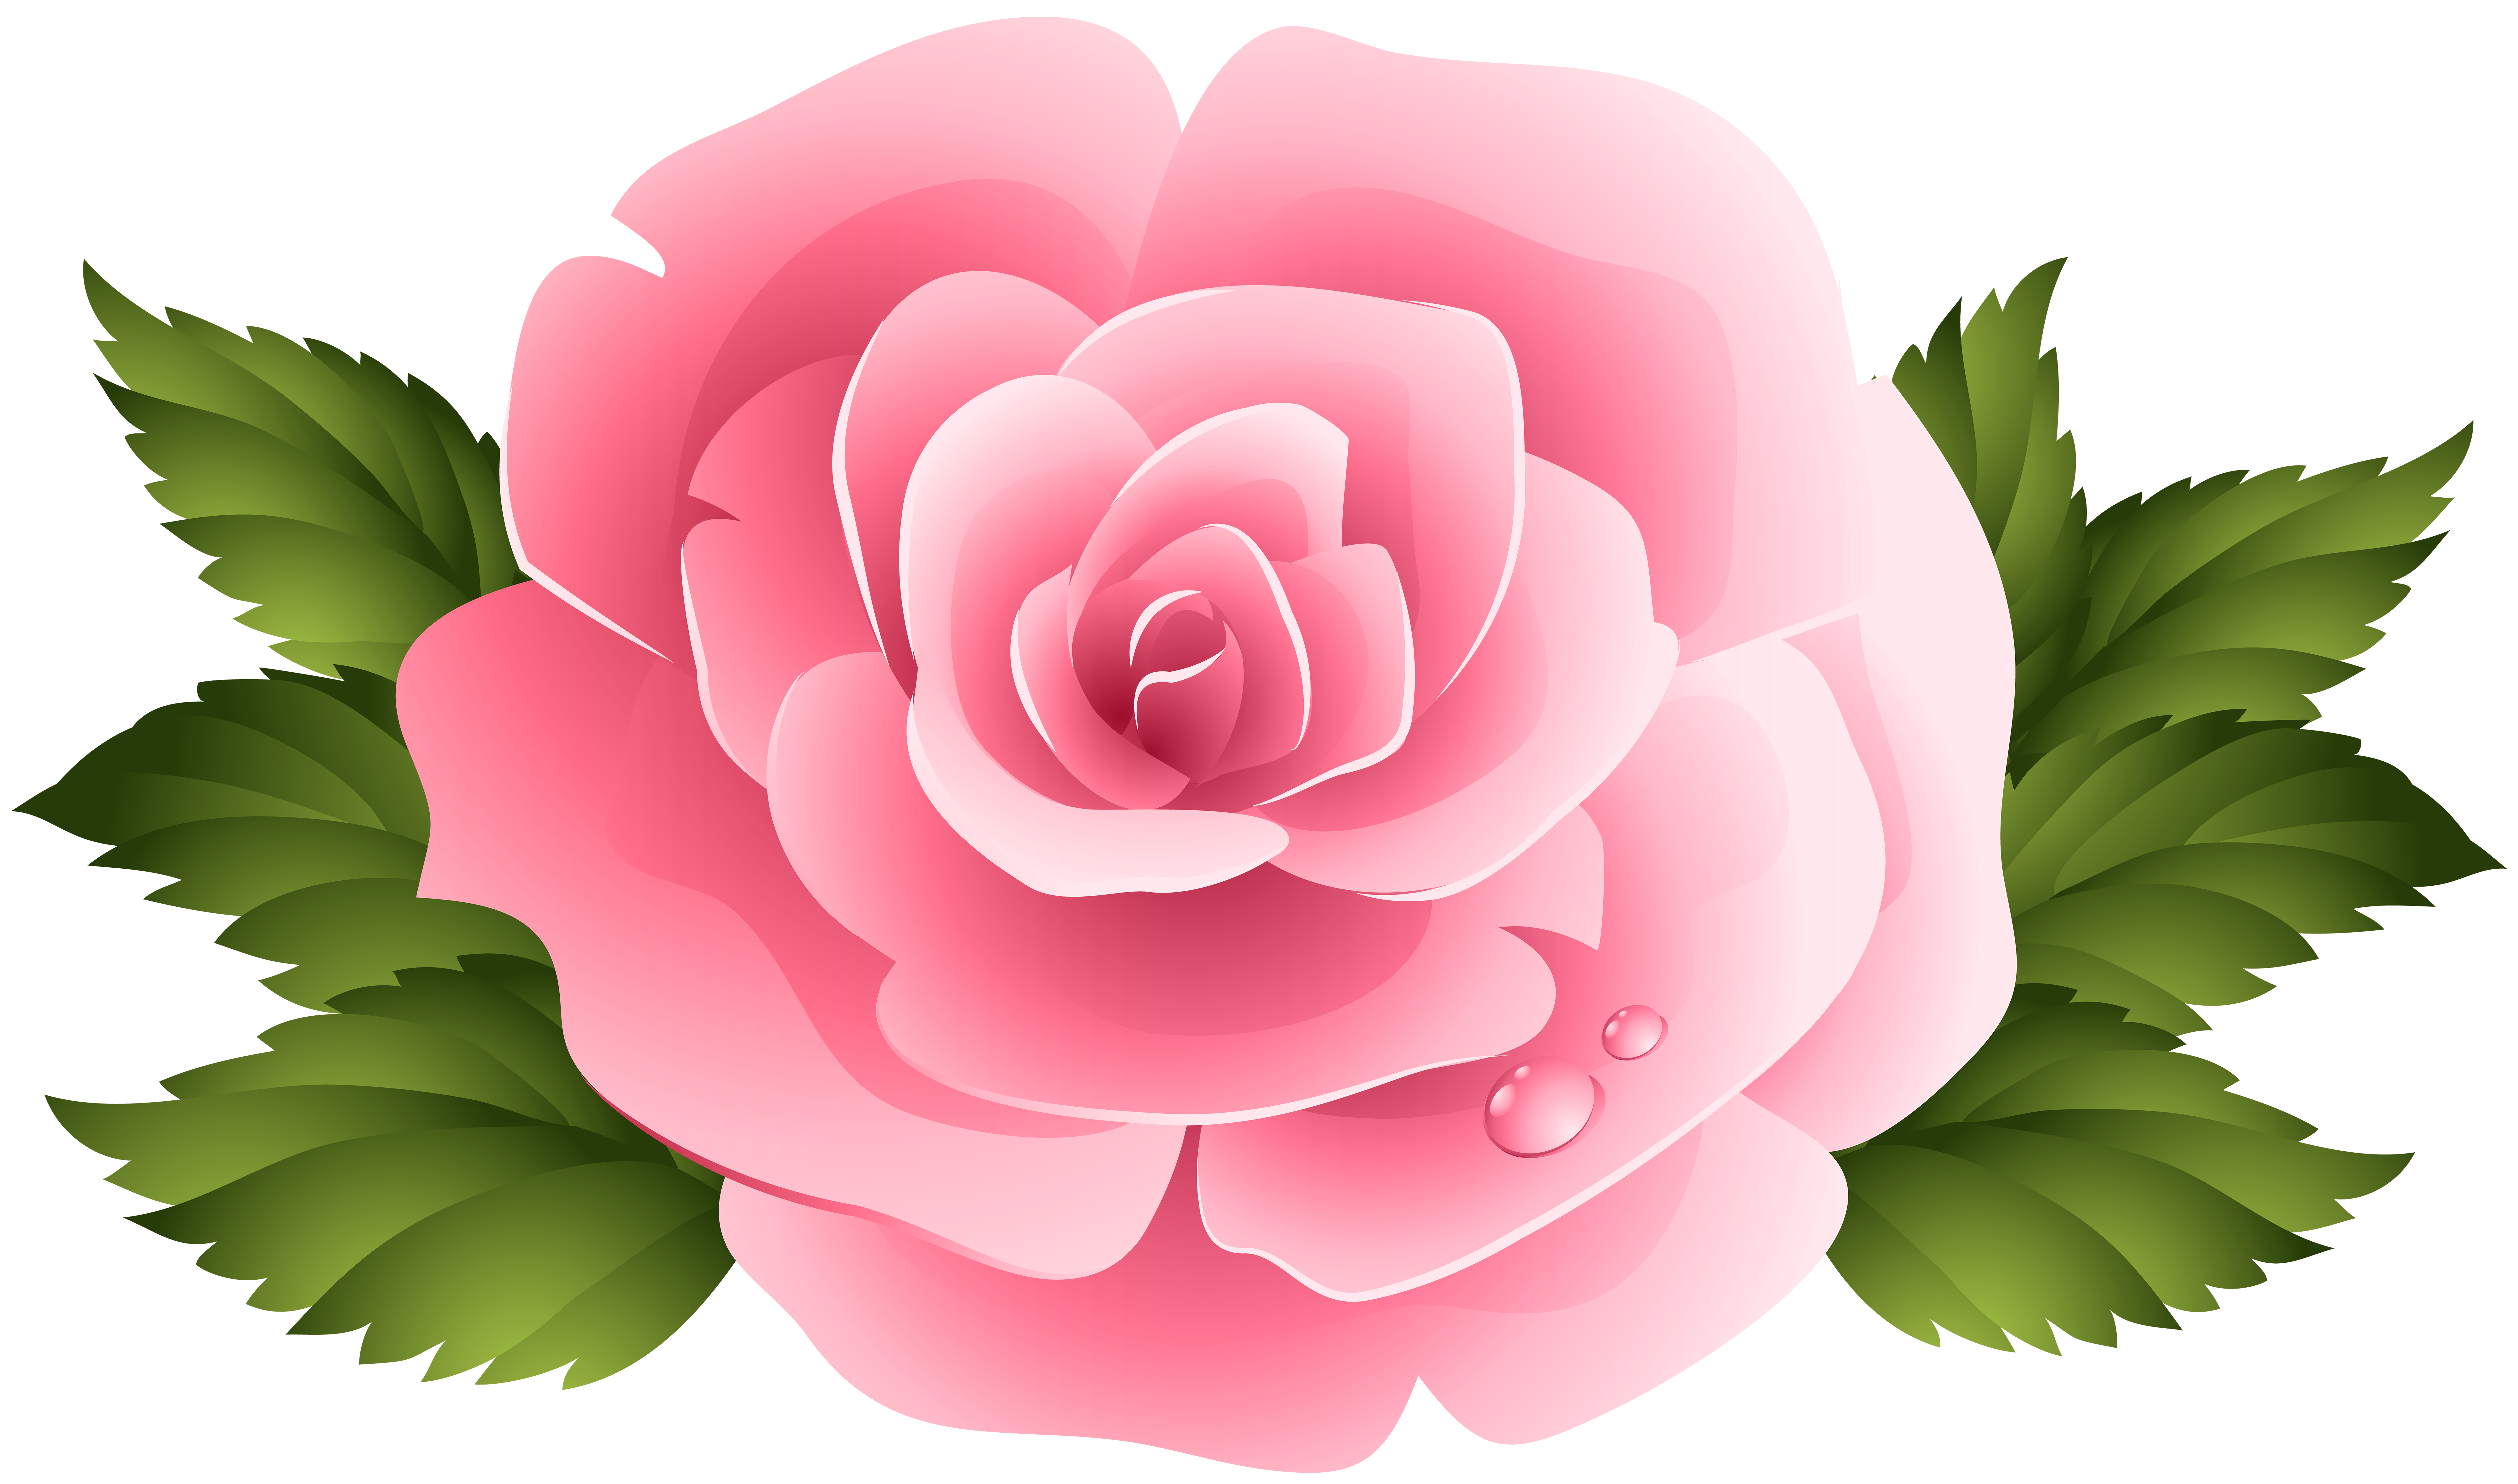 Pink Rose Clipart Png Image Rosas Flores Flores Hechas A Mano